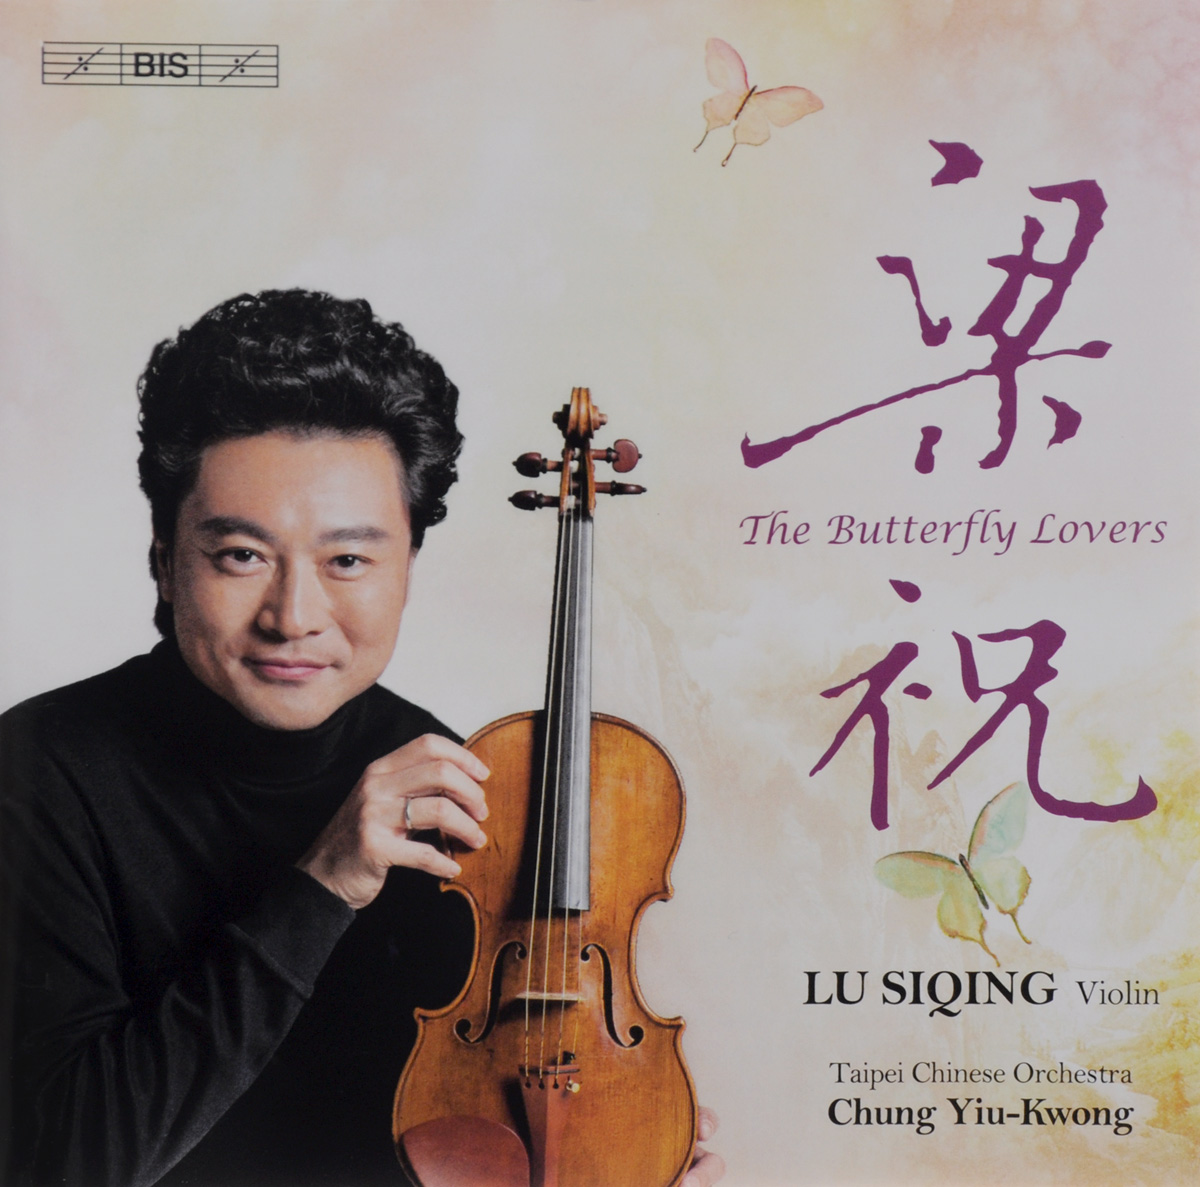 Чунг Йи-Квонг,Lu Siqing,Taipei Chinese Orchestra Chung Yiu-Kwong. The Butterfly Lovers (SACD) rain fan meeting taipei